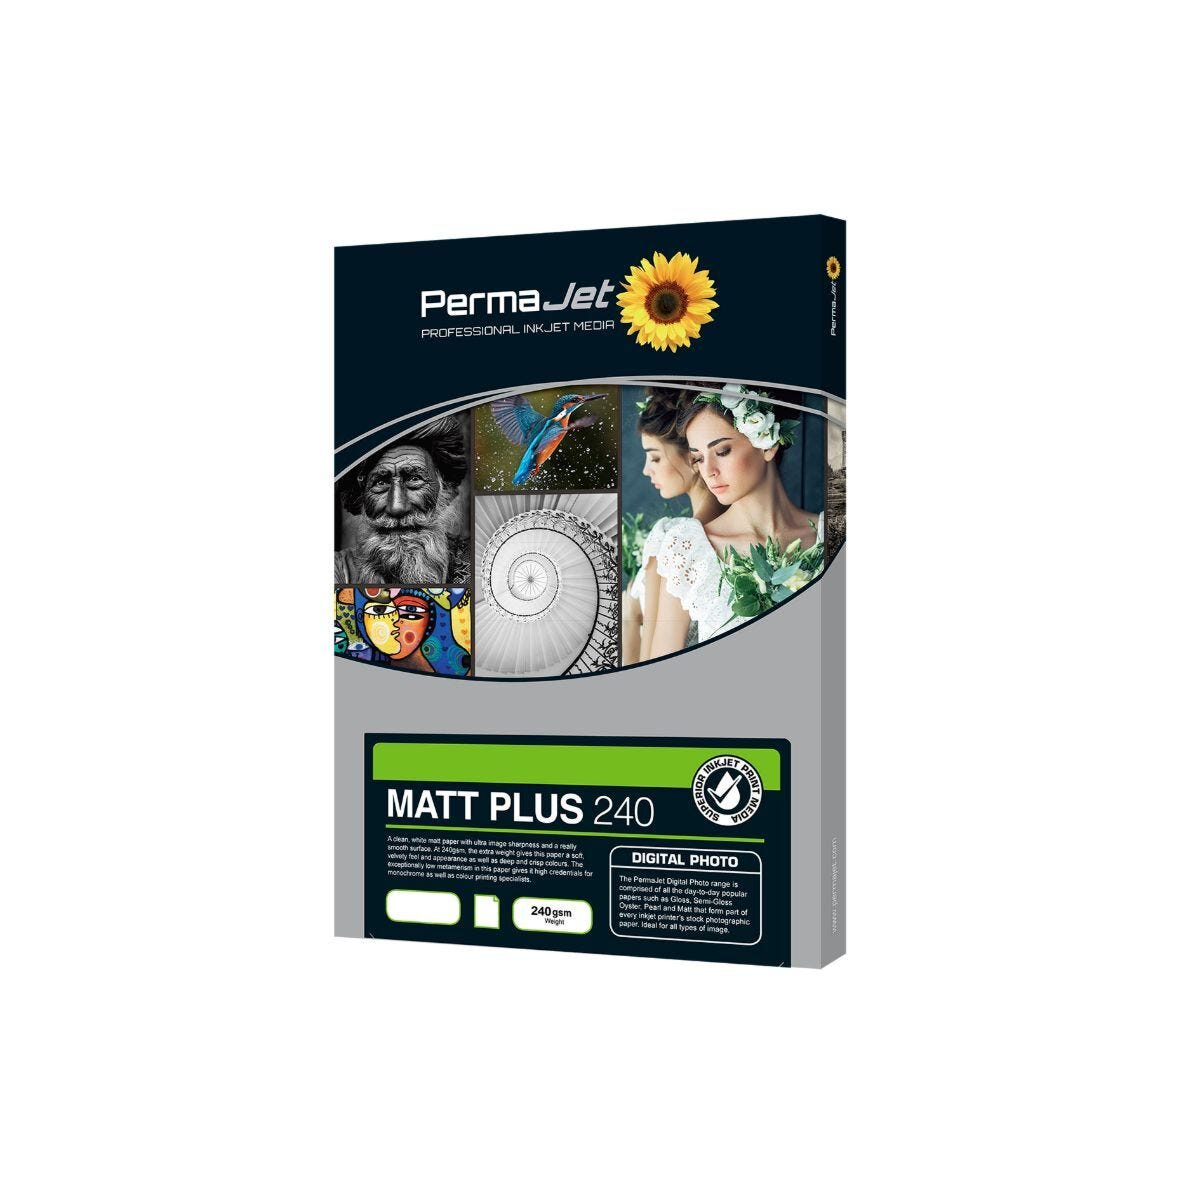 PermaJet Matt Plus 240 Paper 7 x 5 Inch 100 Sheets